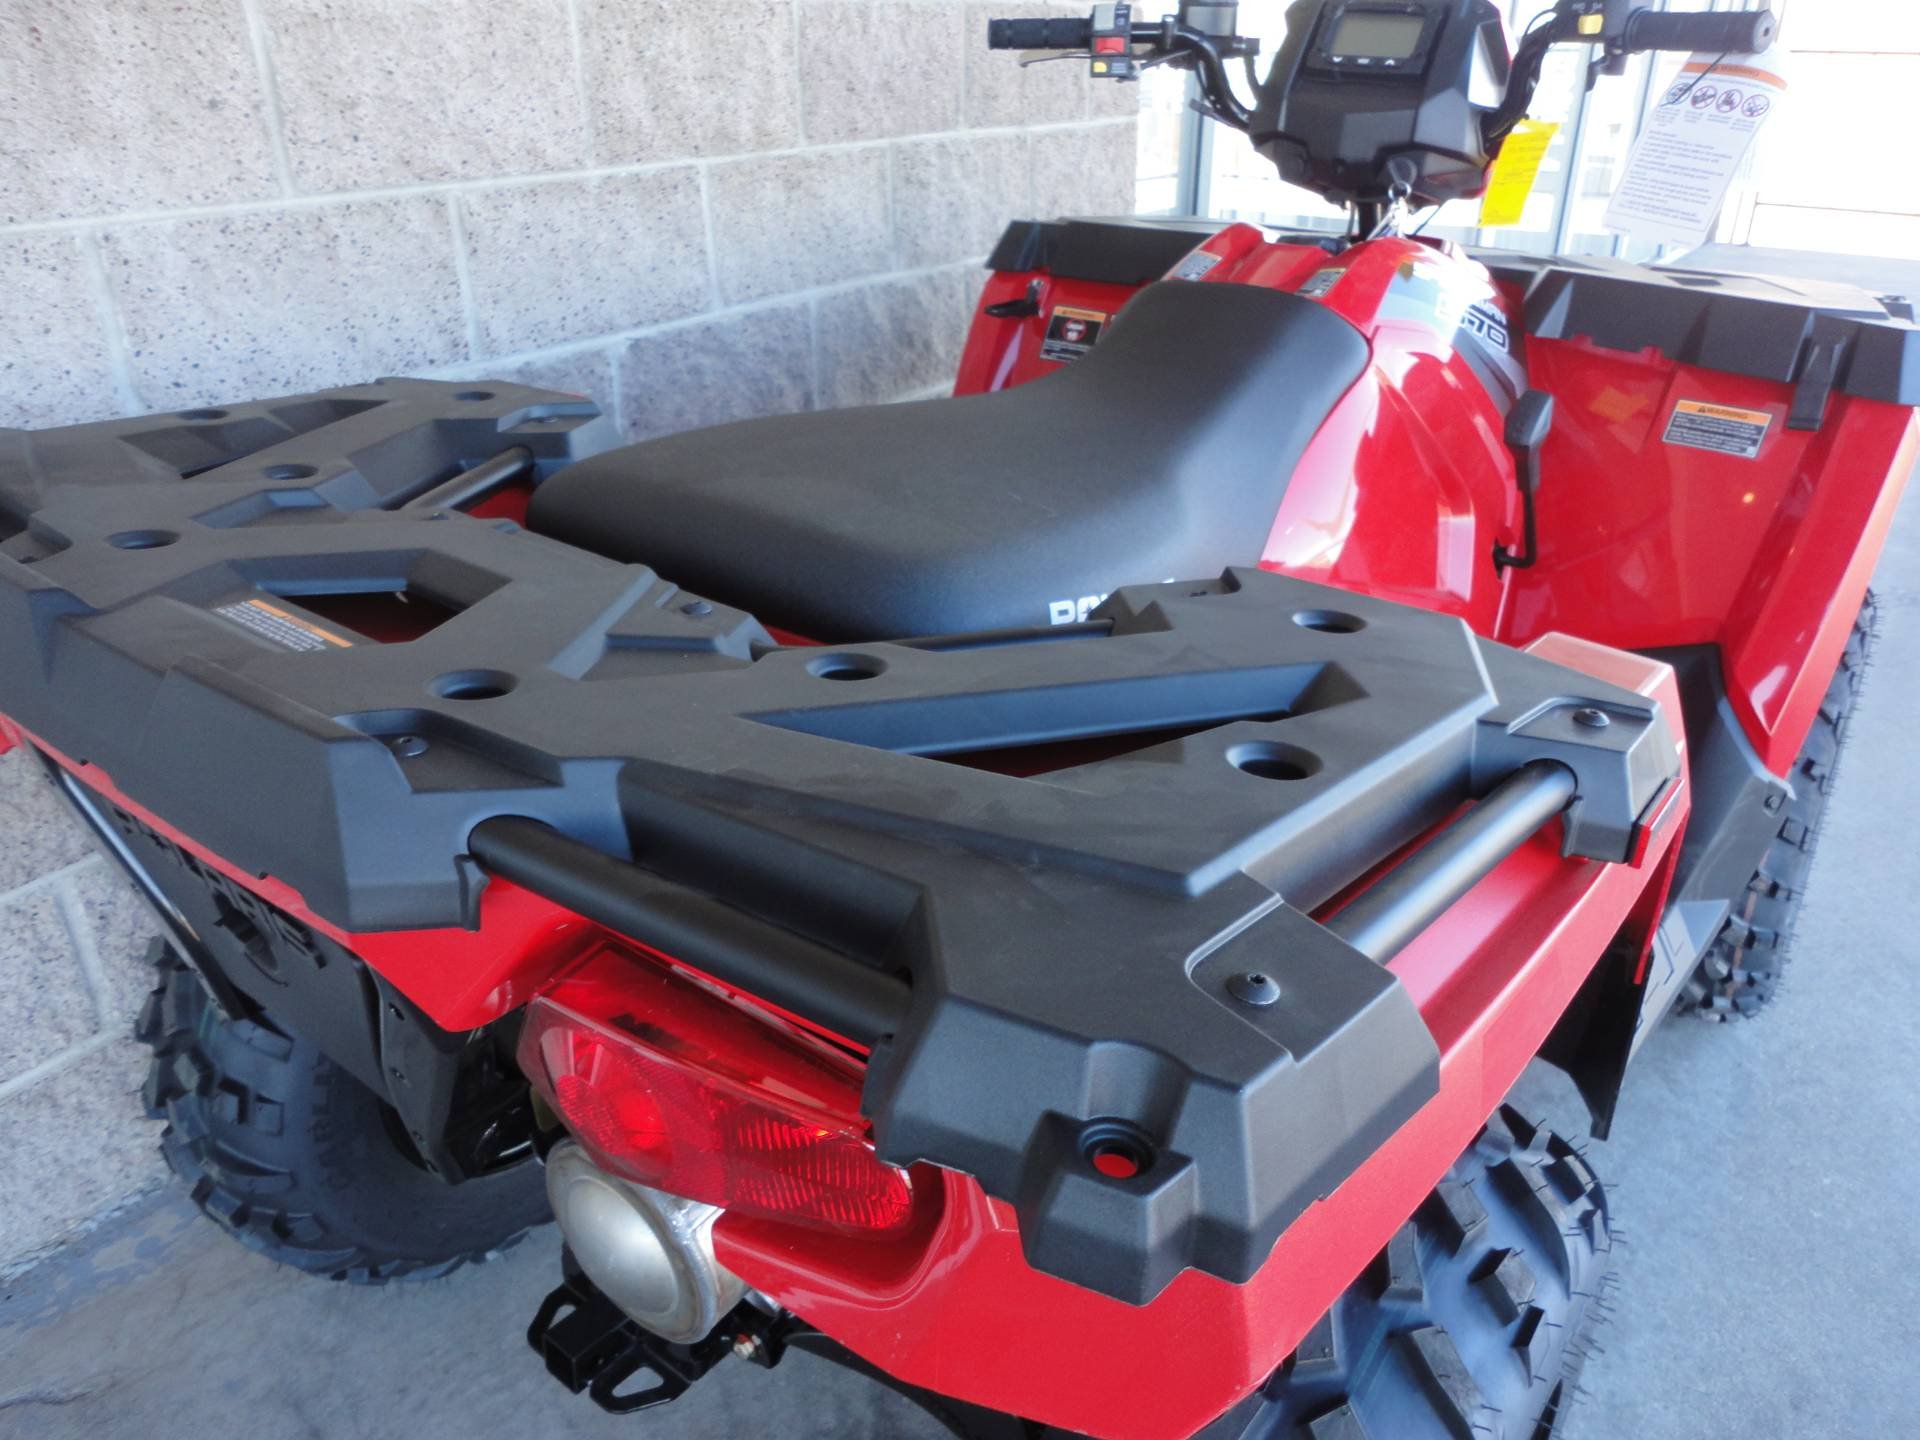 2020 Polaris Sportsman 570 in Denver, Colorado - Photo 15